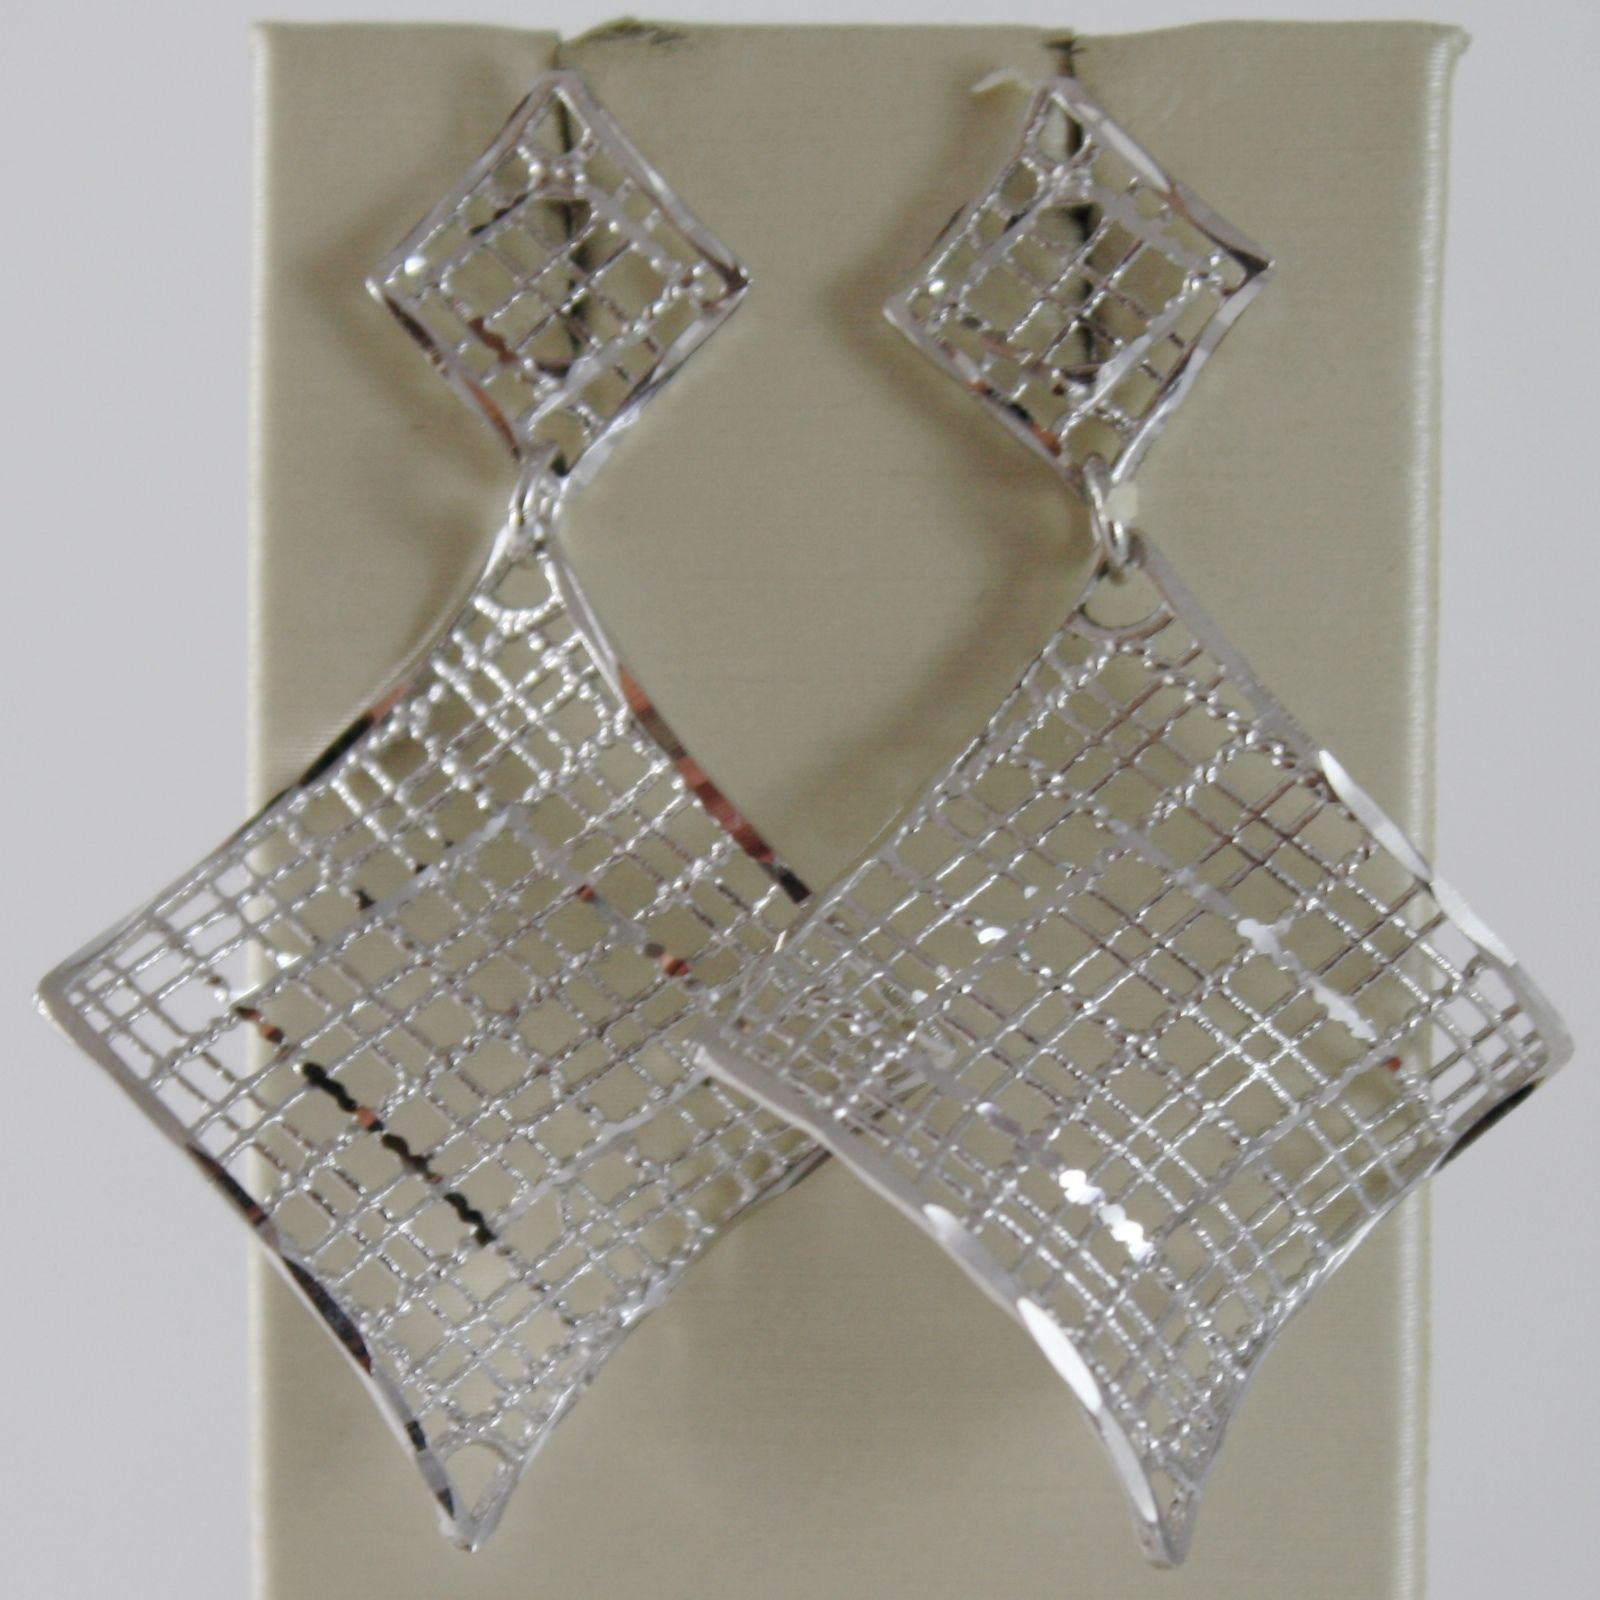 18K WHITE GOLD PENDANT EARRINGS FINELY WORKED DOUBLE ONDULATE WAVE MADE IN ITALY